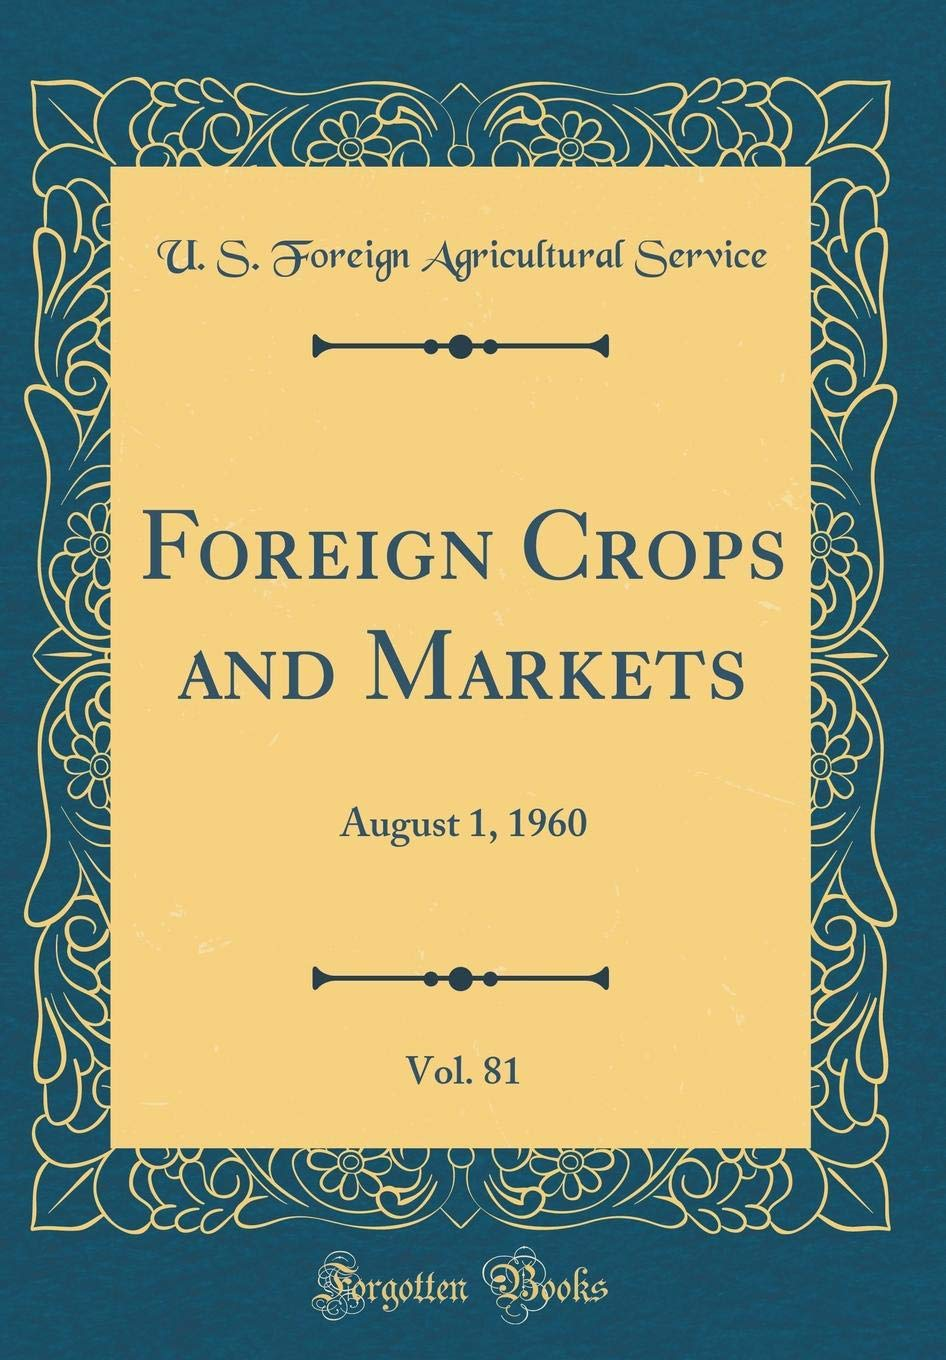 Foreign Crops and Markets, Vol. 81: August 1, 1960 (Classic Reprint) PDF